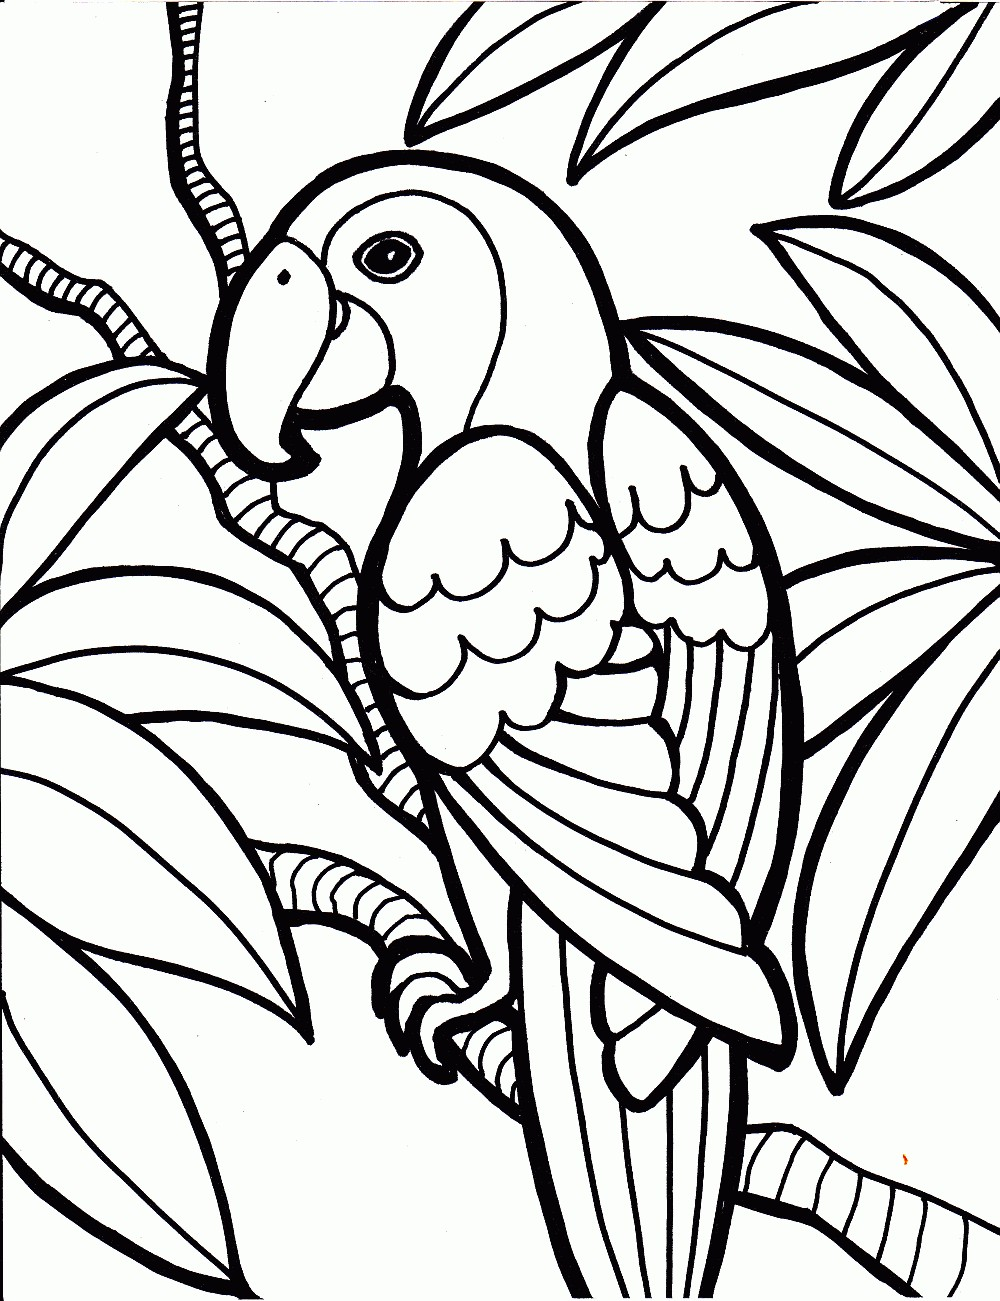 parrot birds coloring page - Parrot Pictures To Color